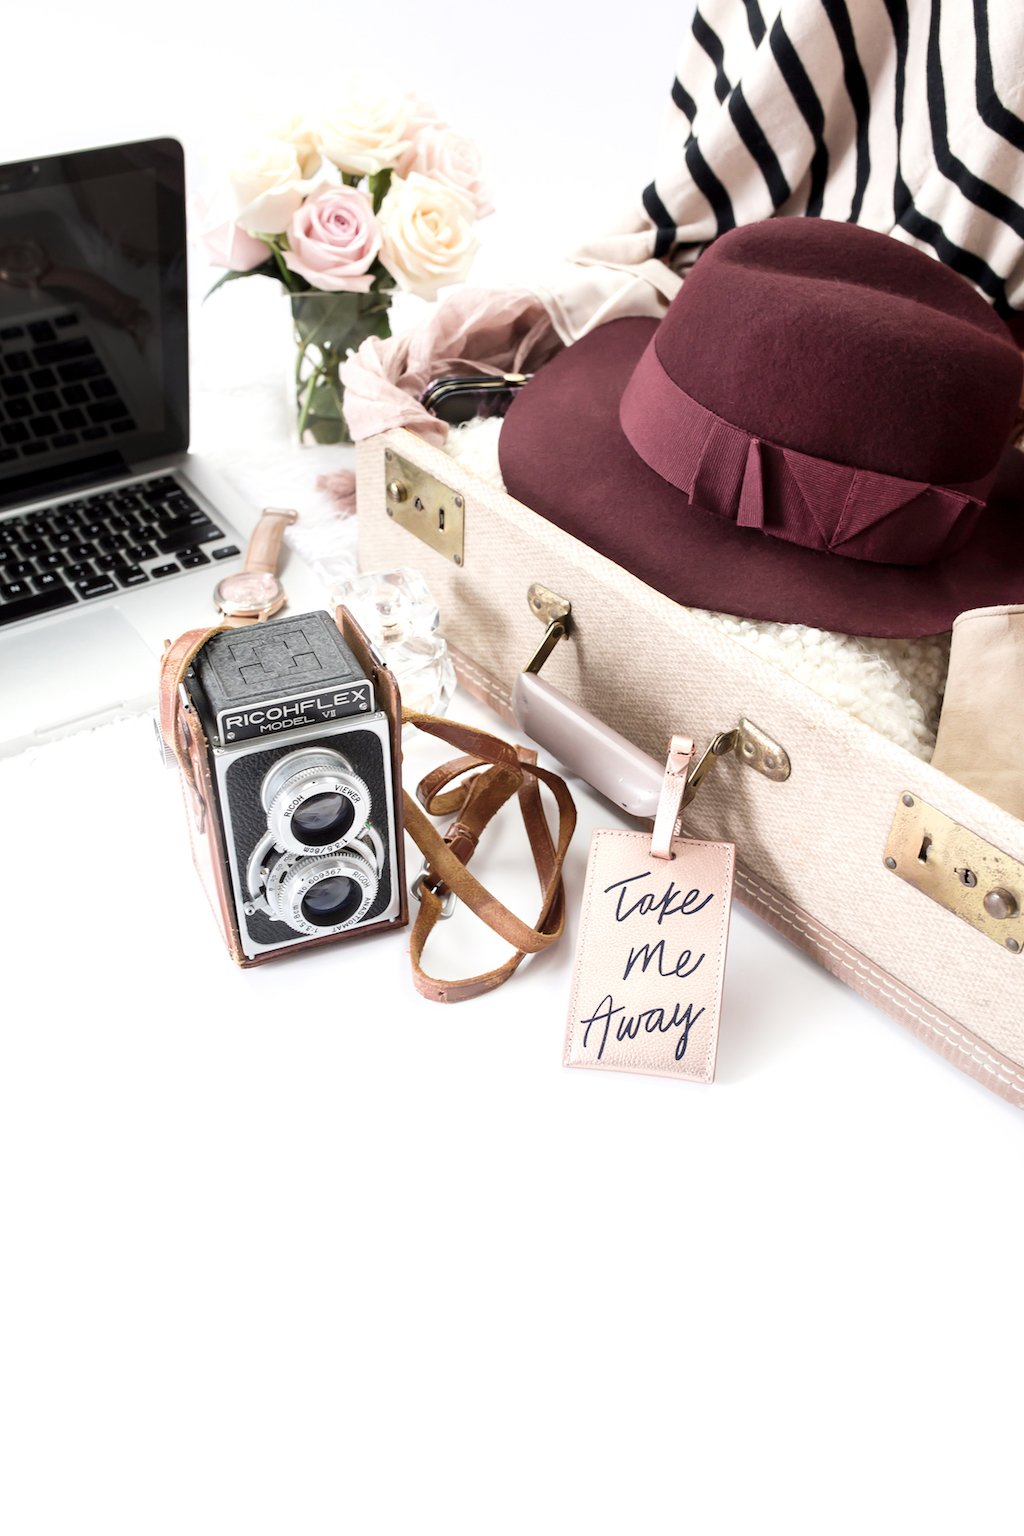 An open suitcase with clothing, hat, a laptop and a camera